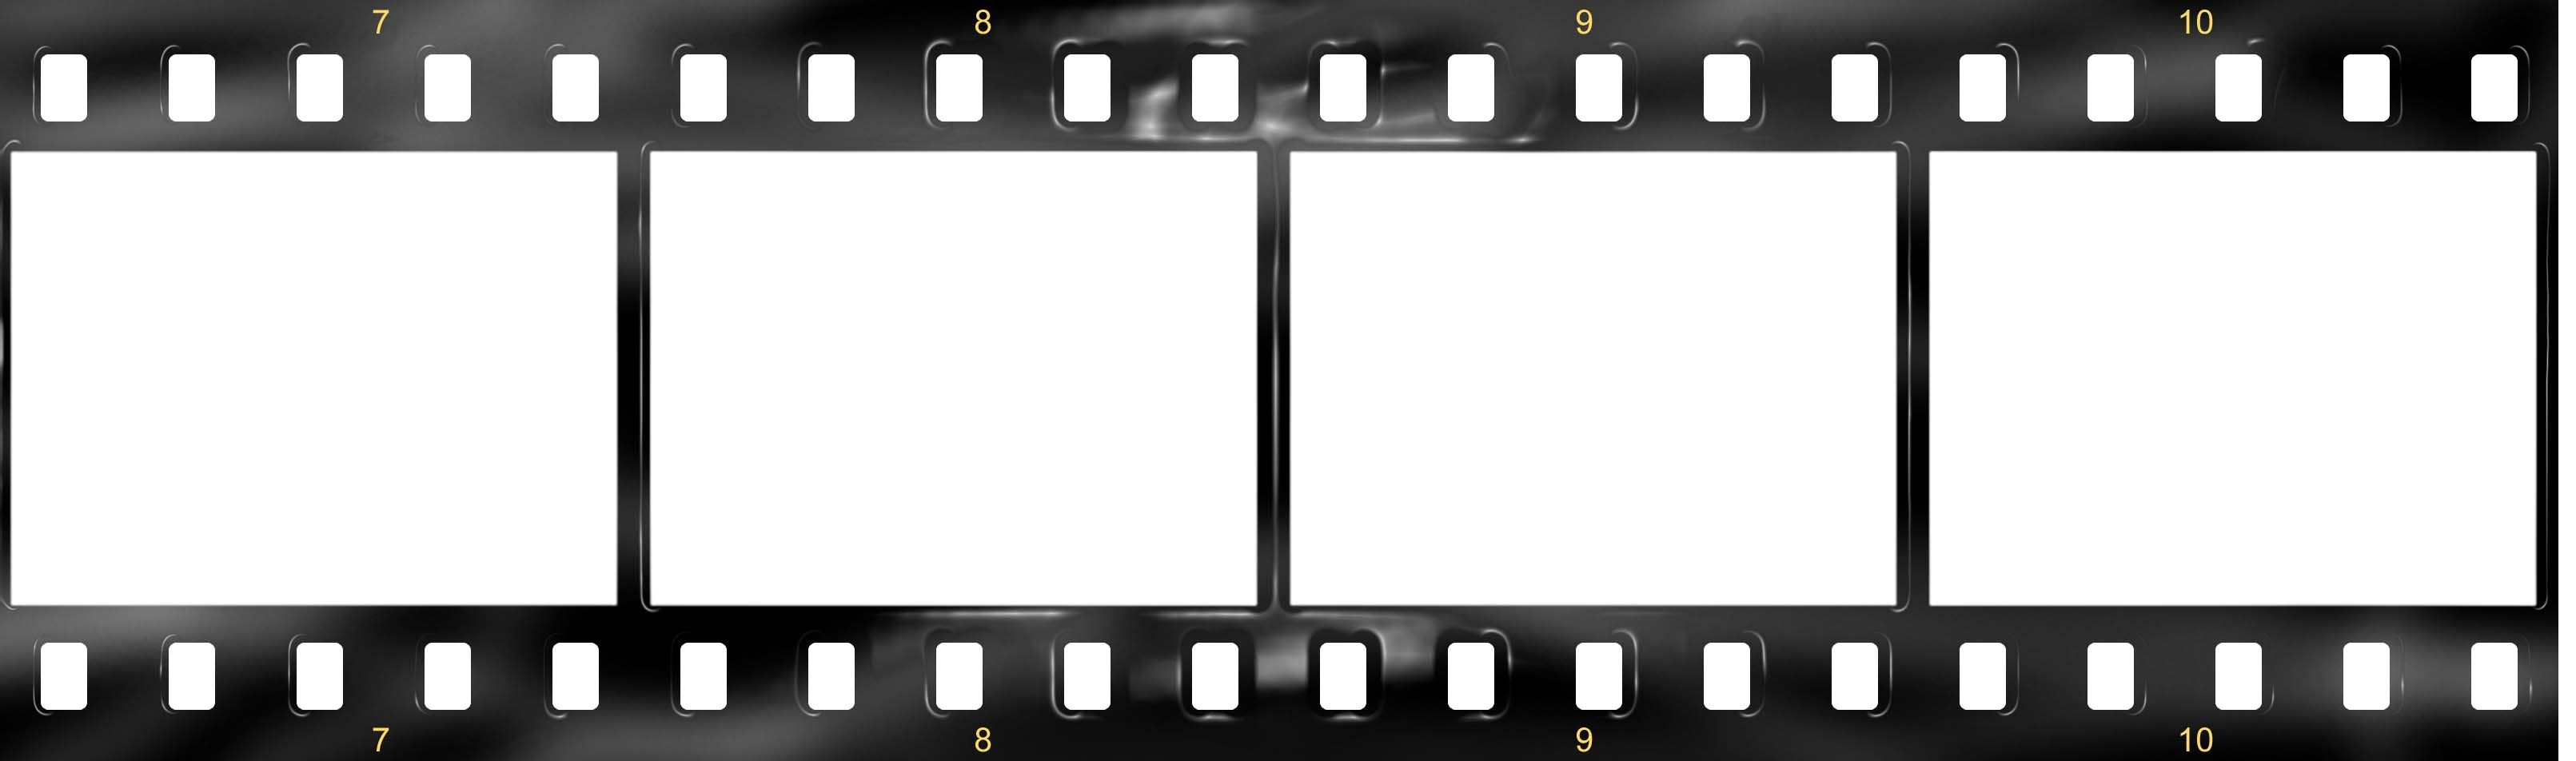 film strip picture template - 15 film strip template photoshop psd images film strip